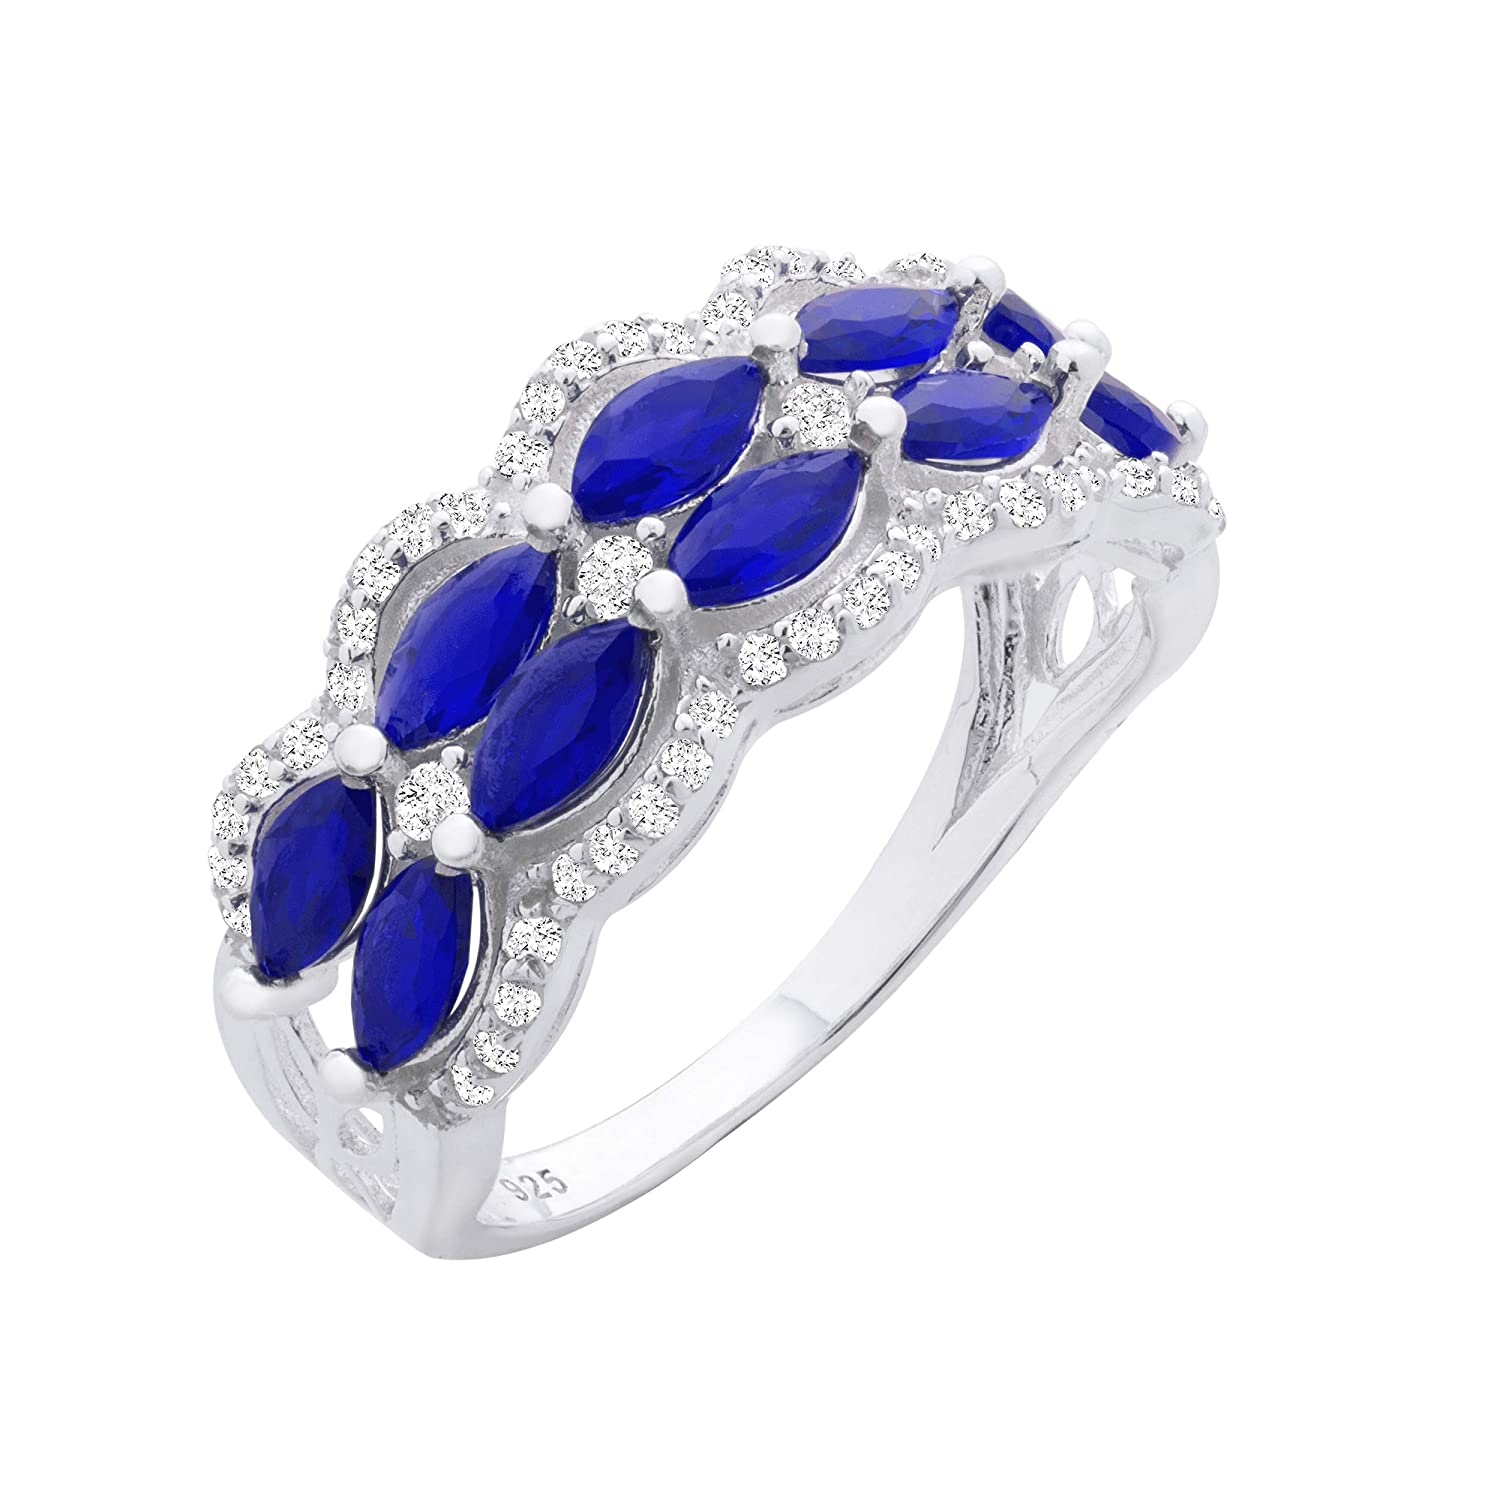 Chic Jewels RG2032-6 925 Sterling Silver Royal Blue Two Row Ring For Women,Oval Cut Stones